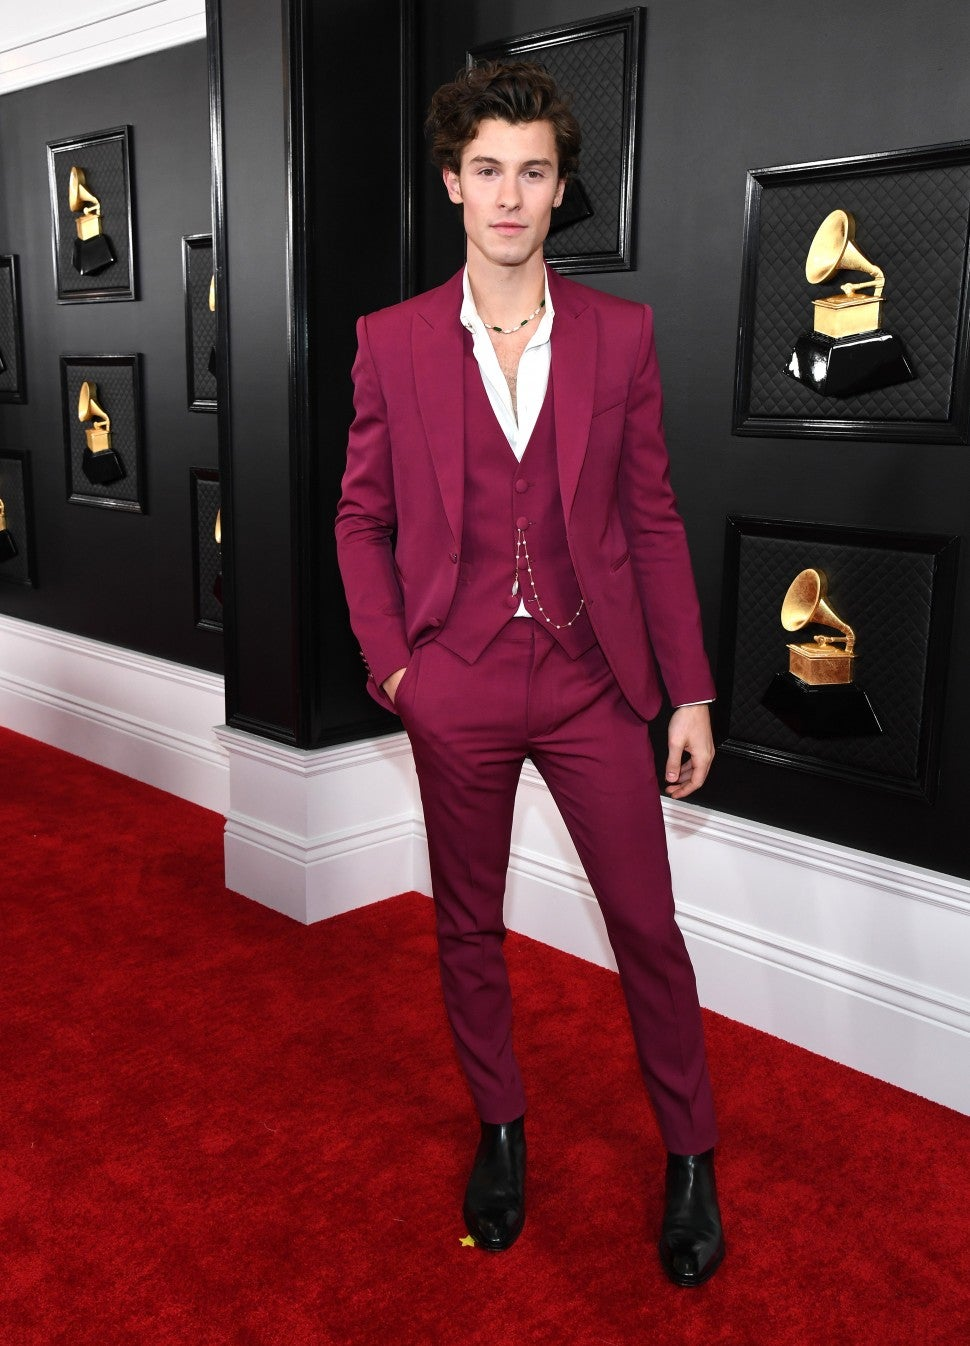 shawn mendes at 2020 grammys